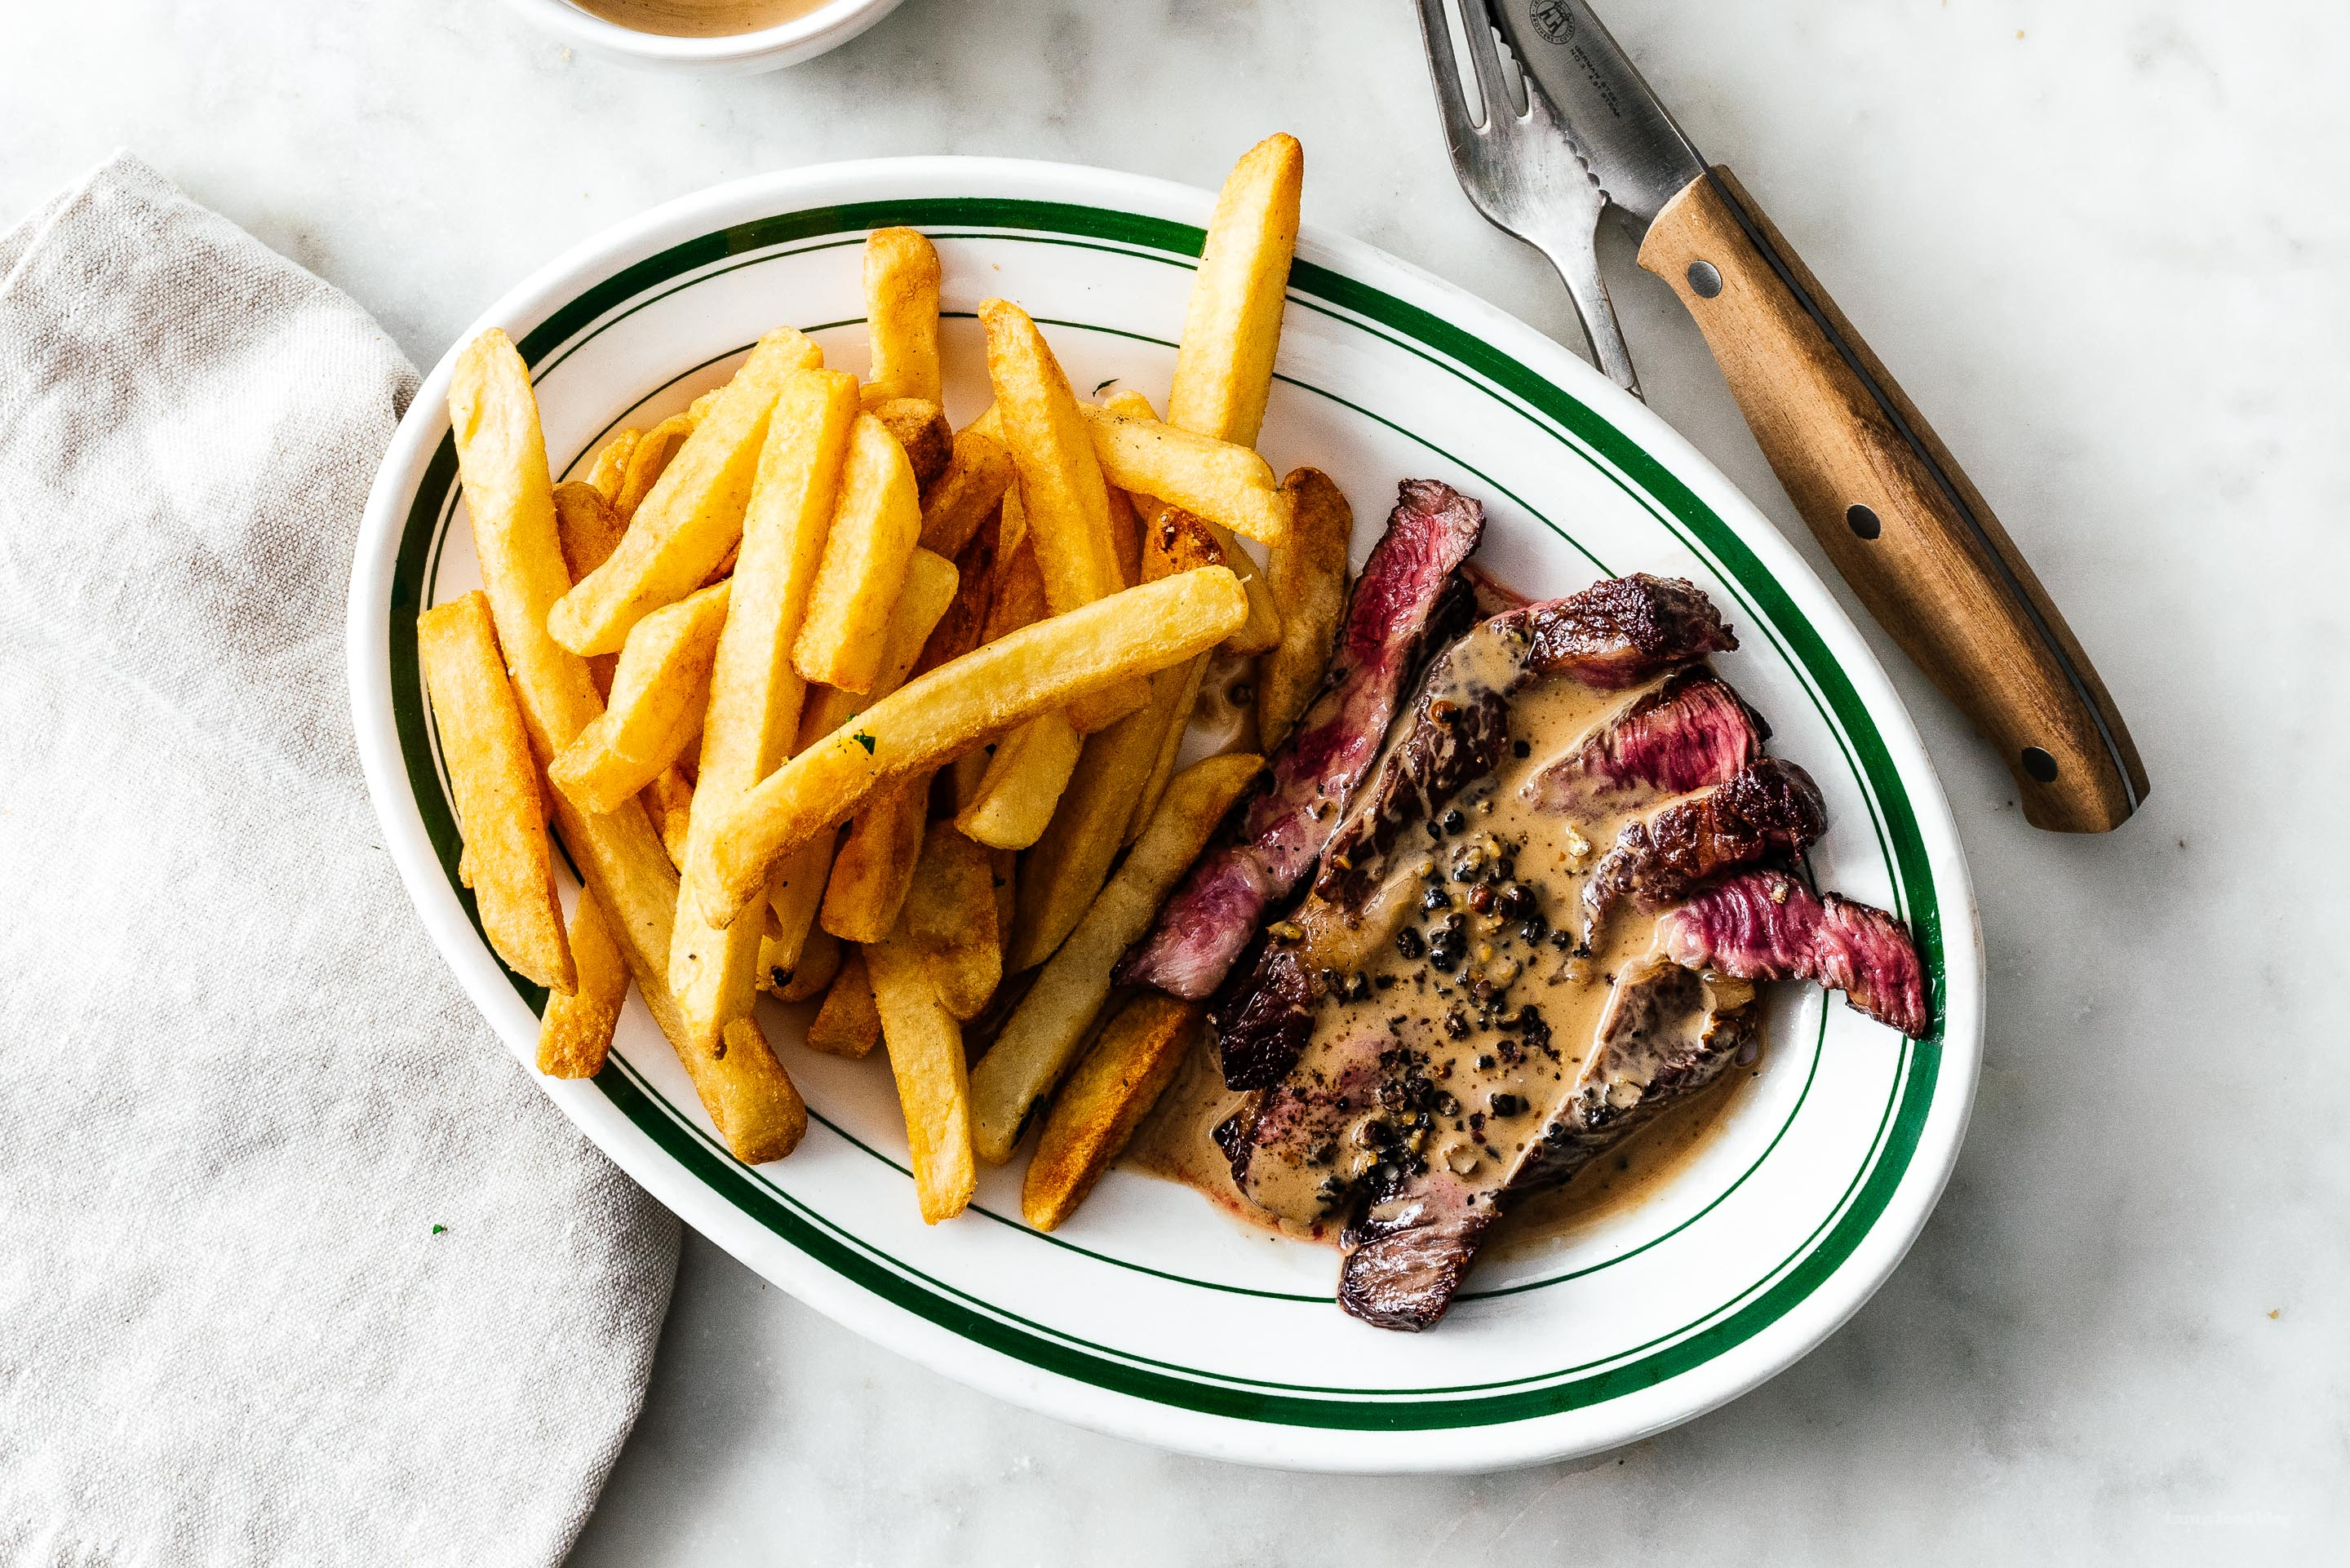 Steak and fries of the week |  www.iamafoodblog.com